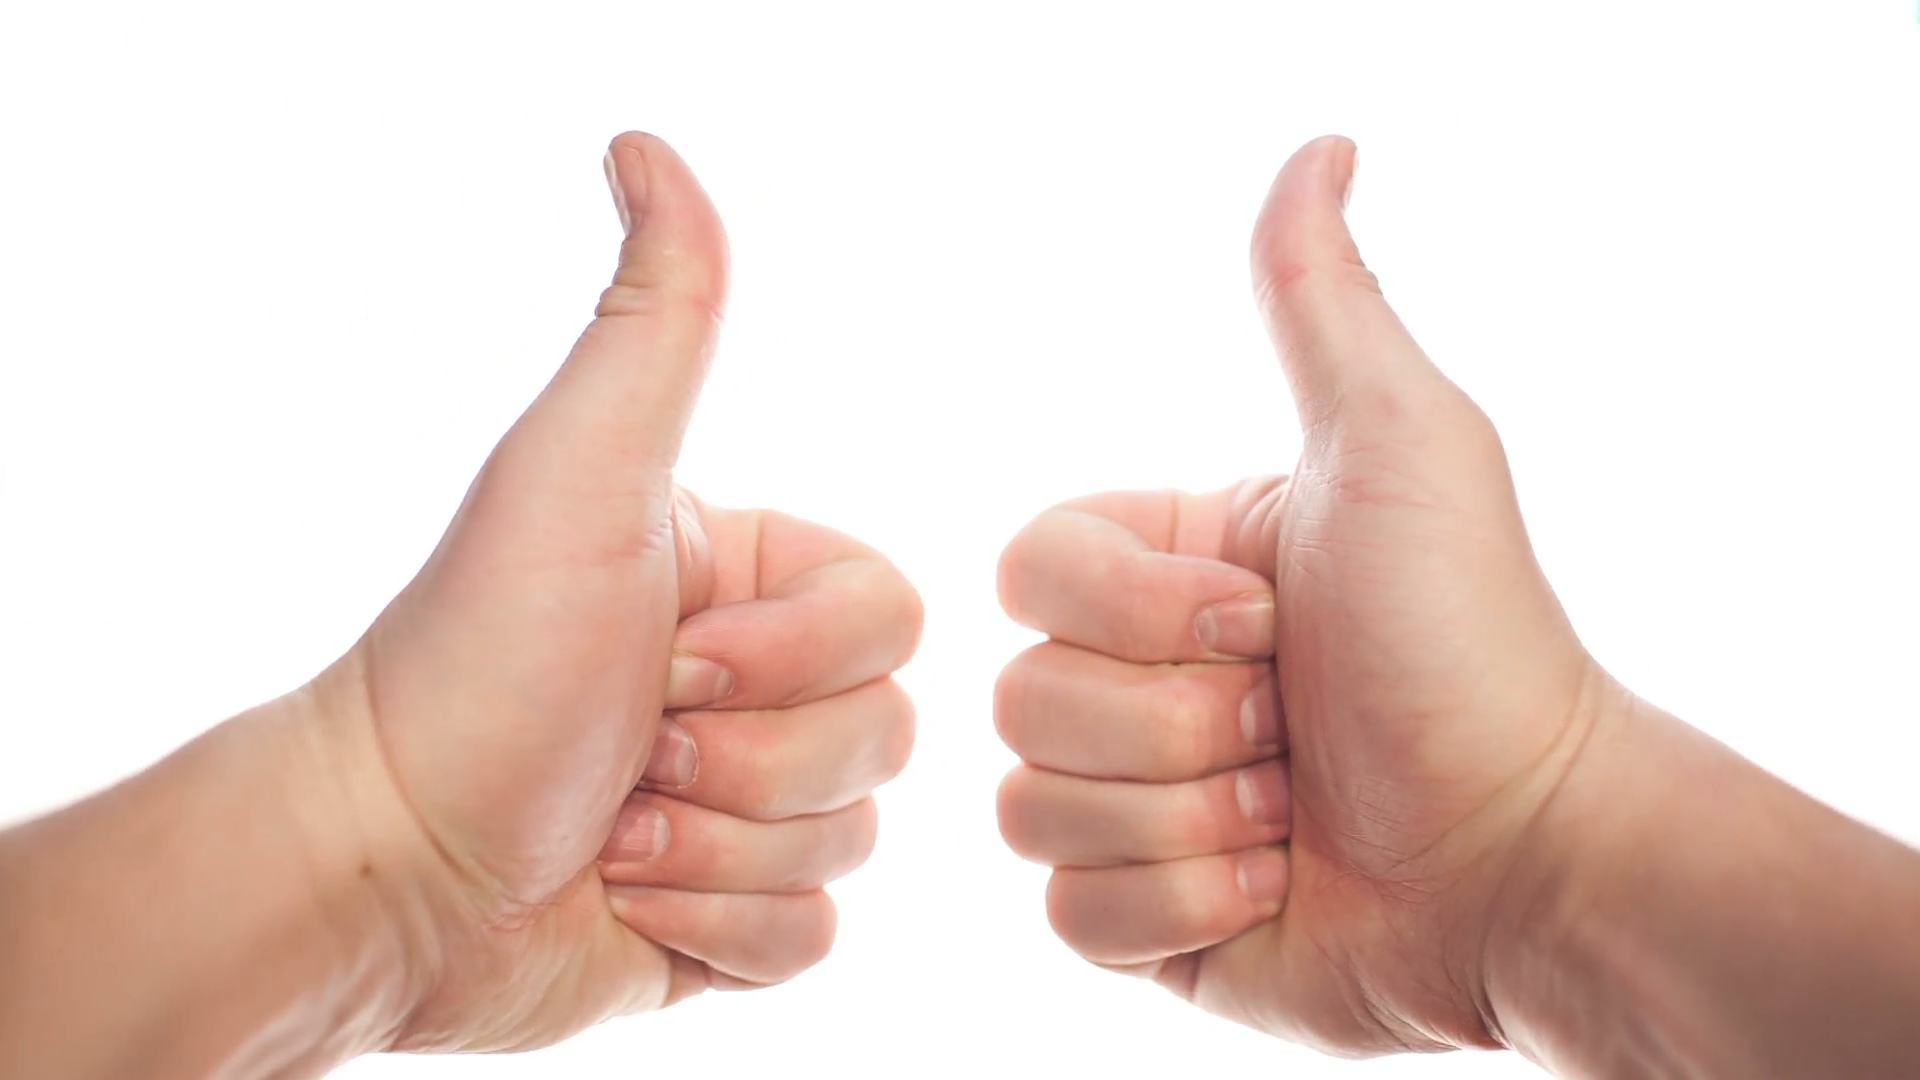 Two Thumbs Up PNG HD - 136099